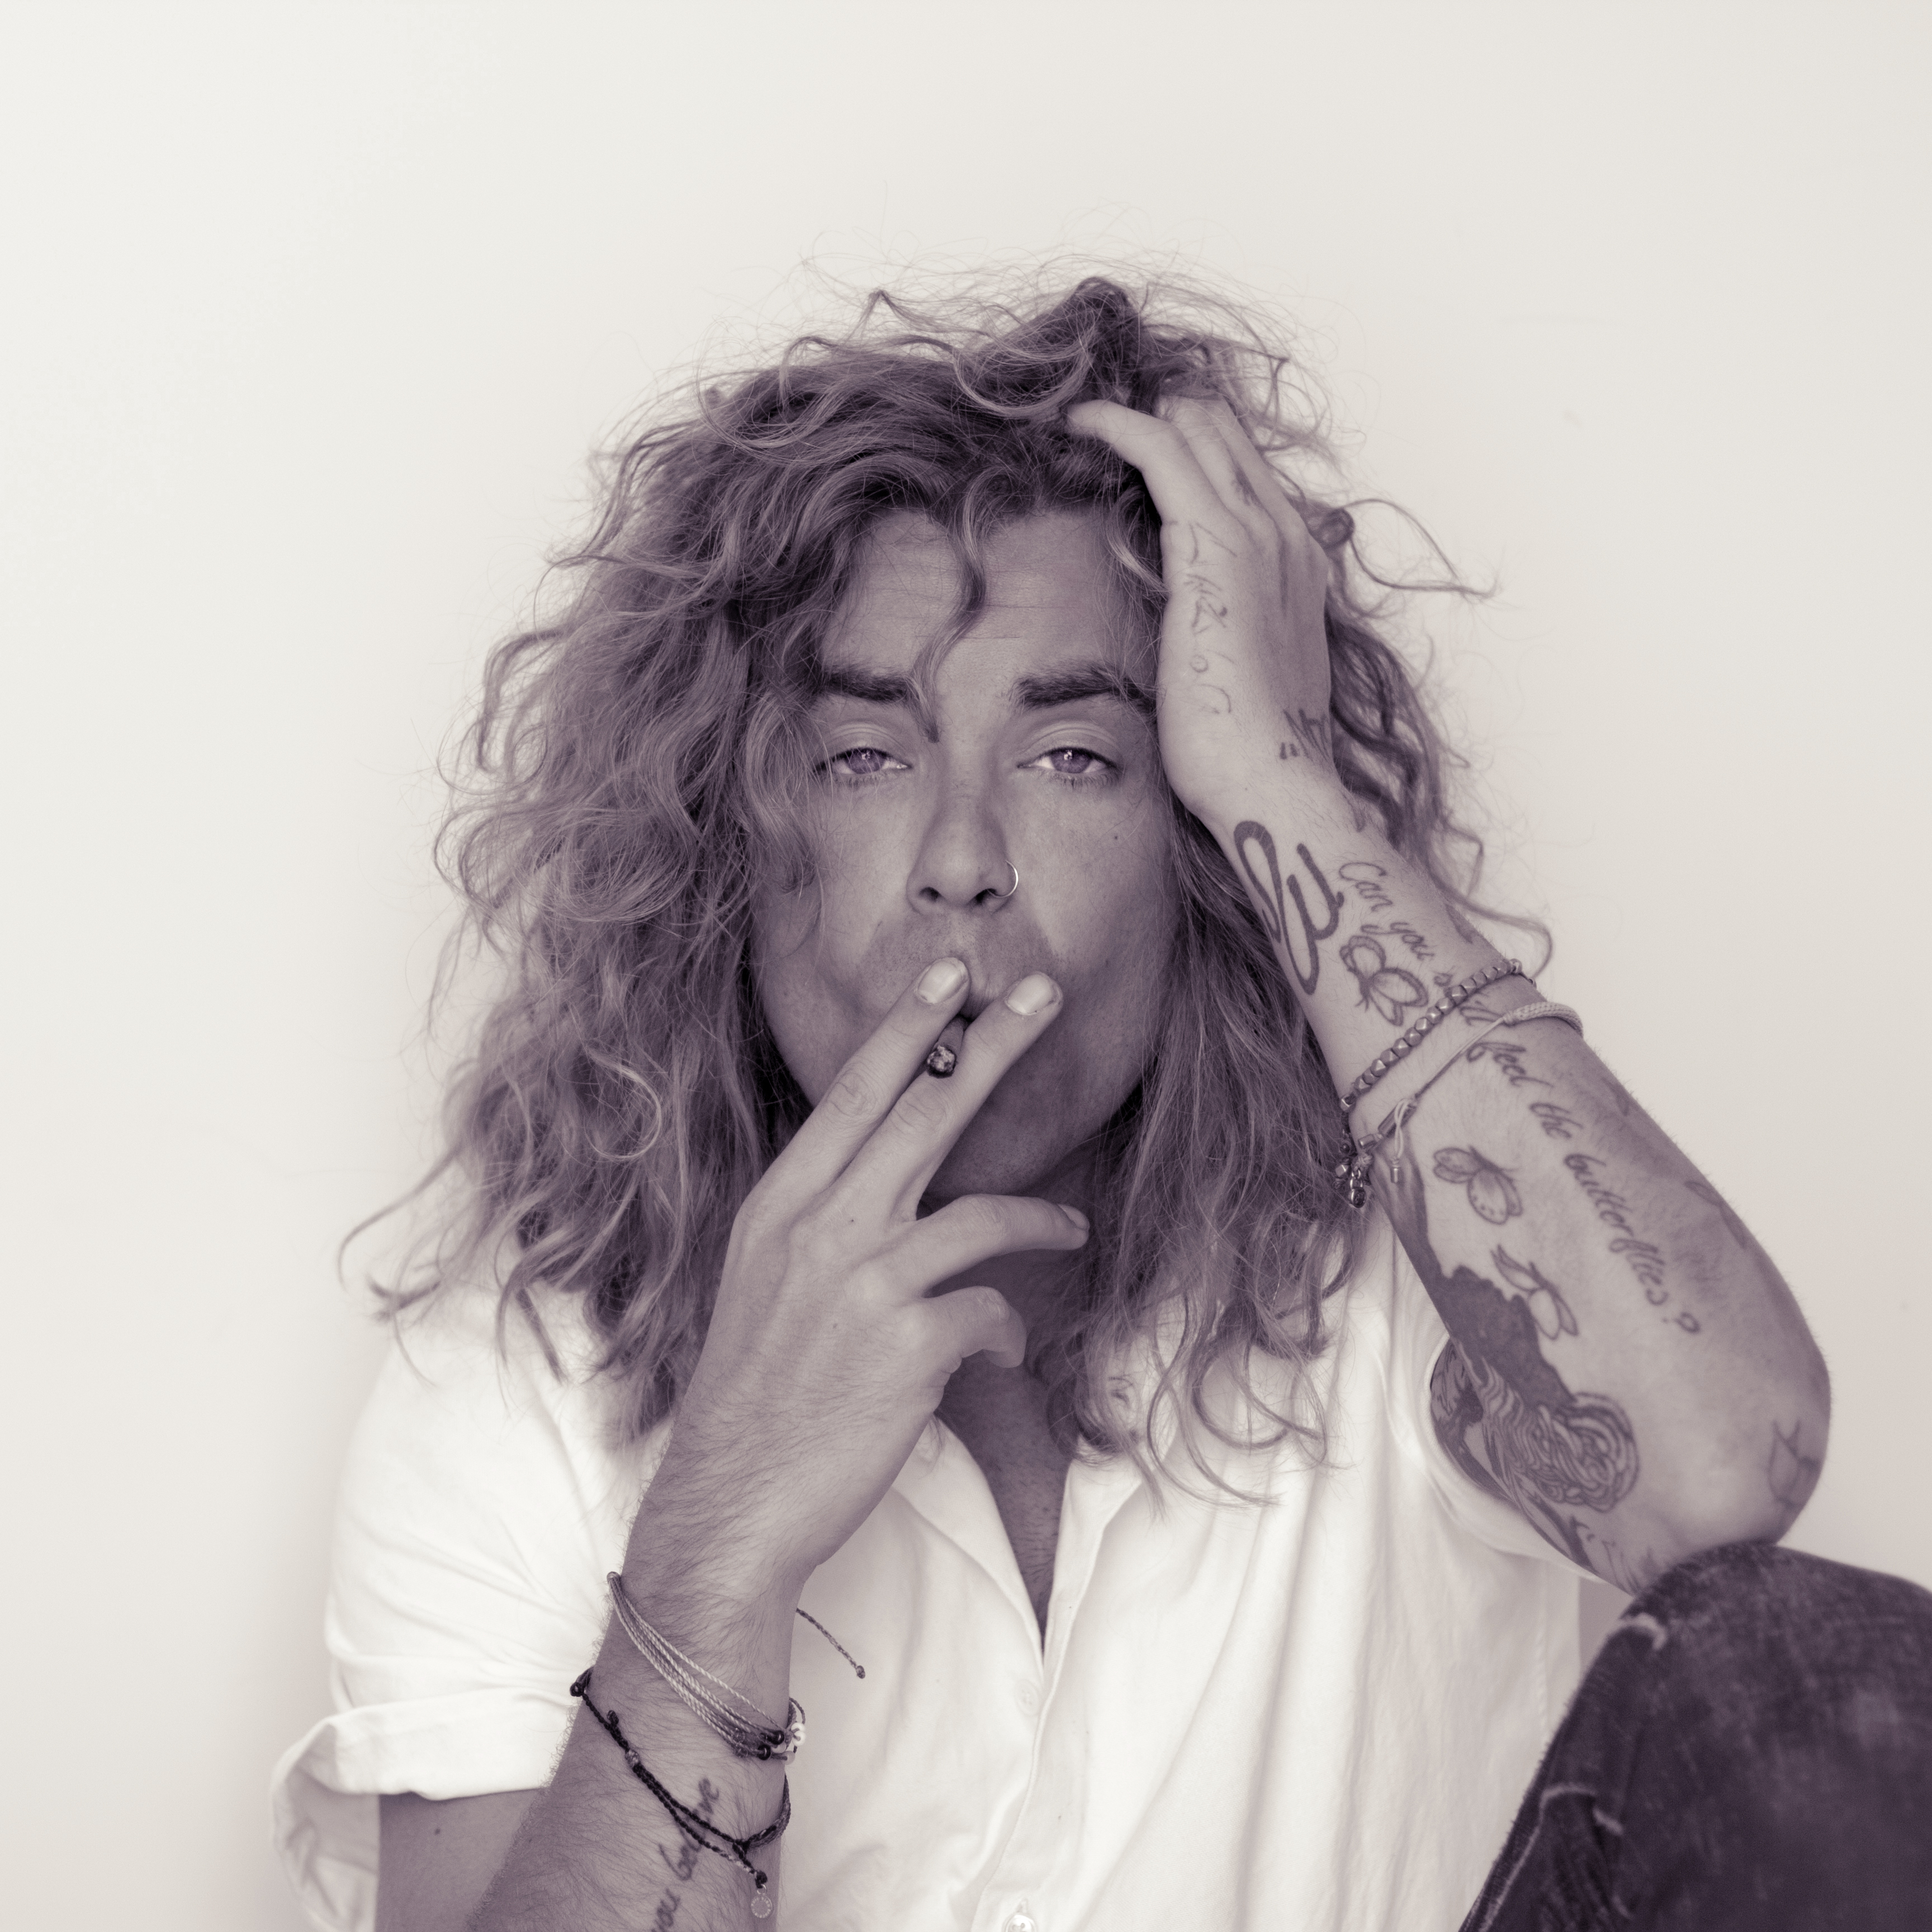 mod sun height